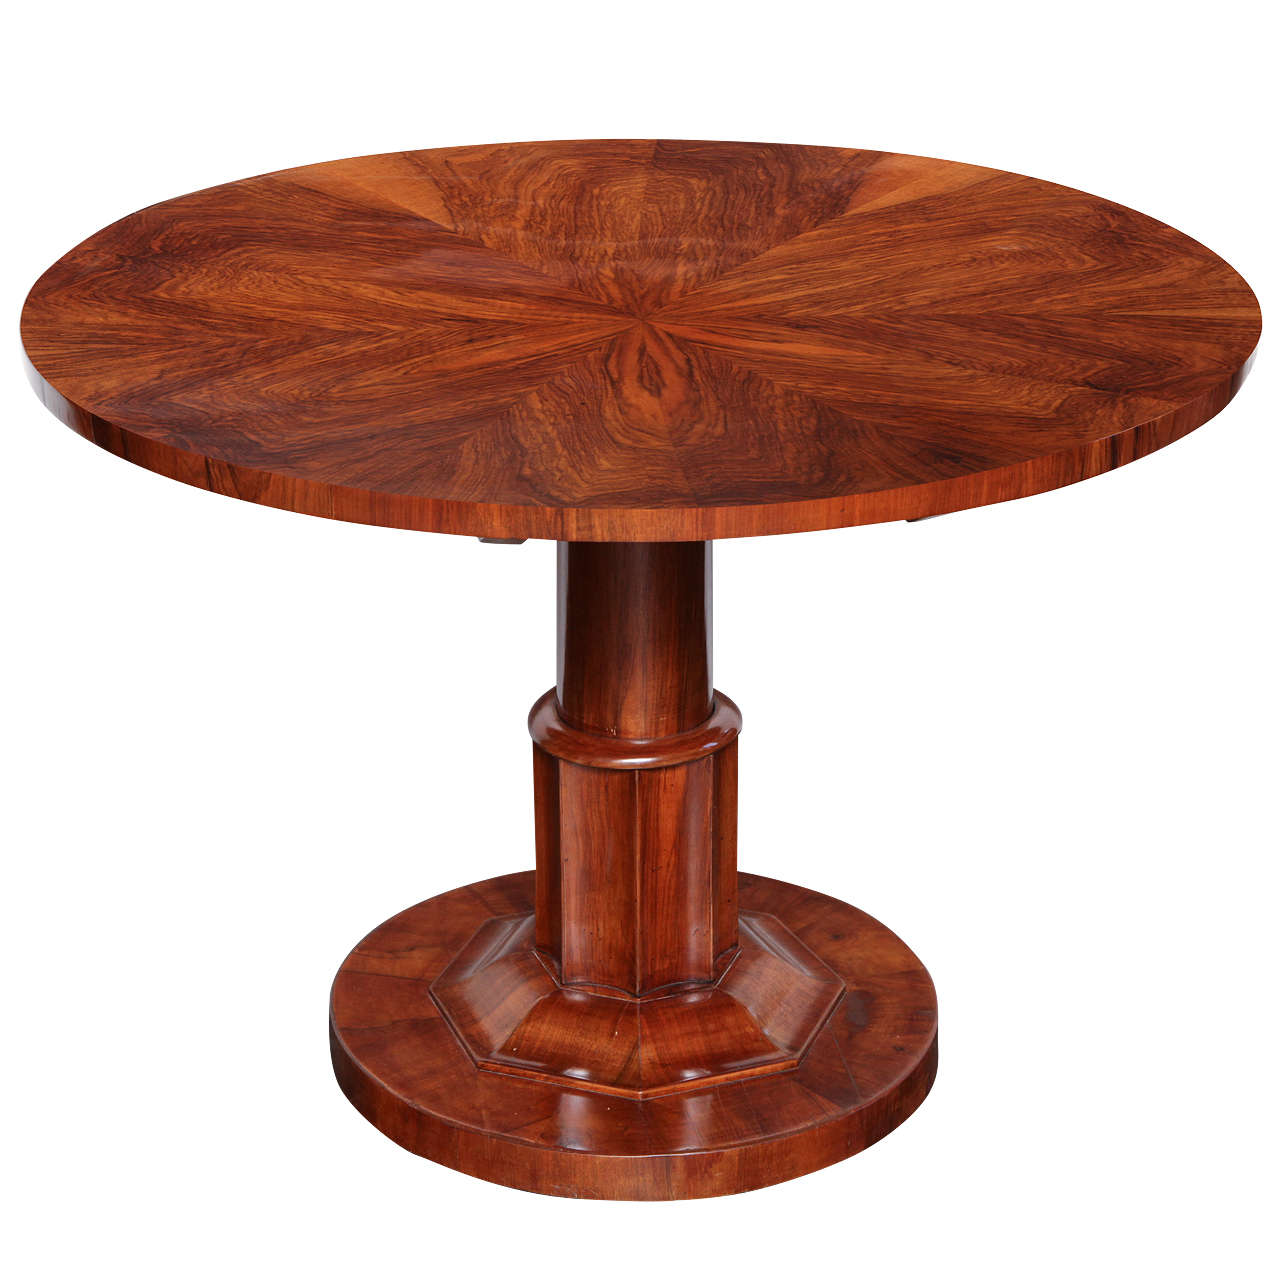 19th Century Viennese Centre Pedestal Table at 1stdibs : X from 1stdibs.com size 1280 x 1280 jpeg 111kB